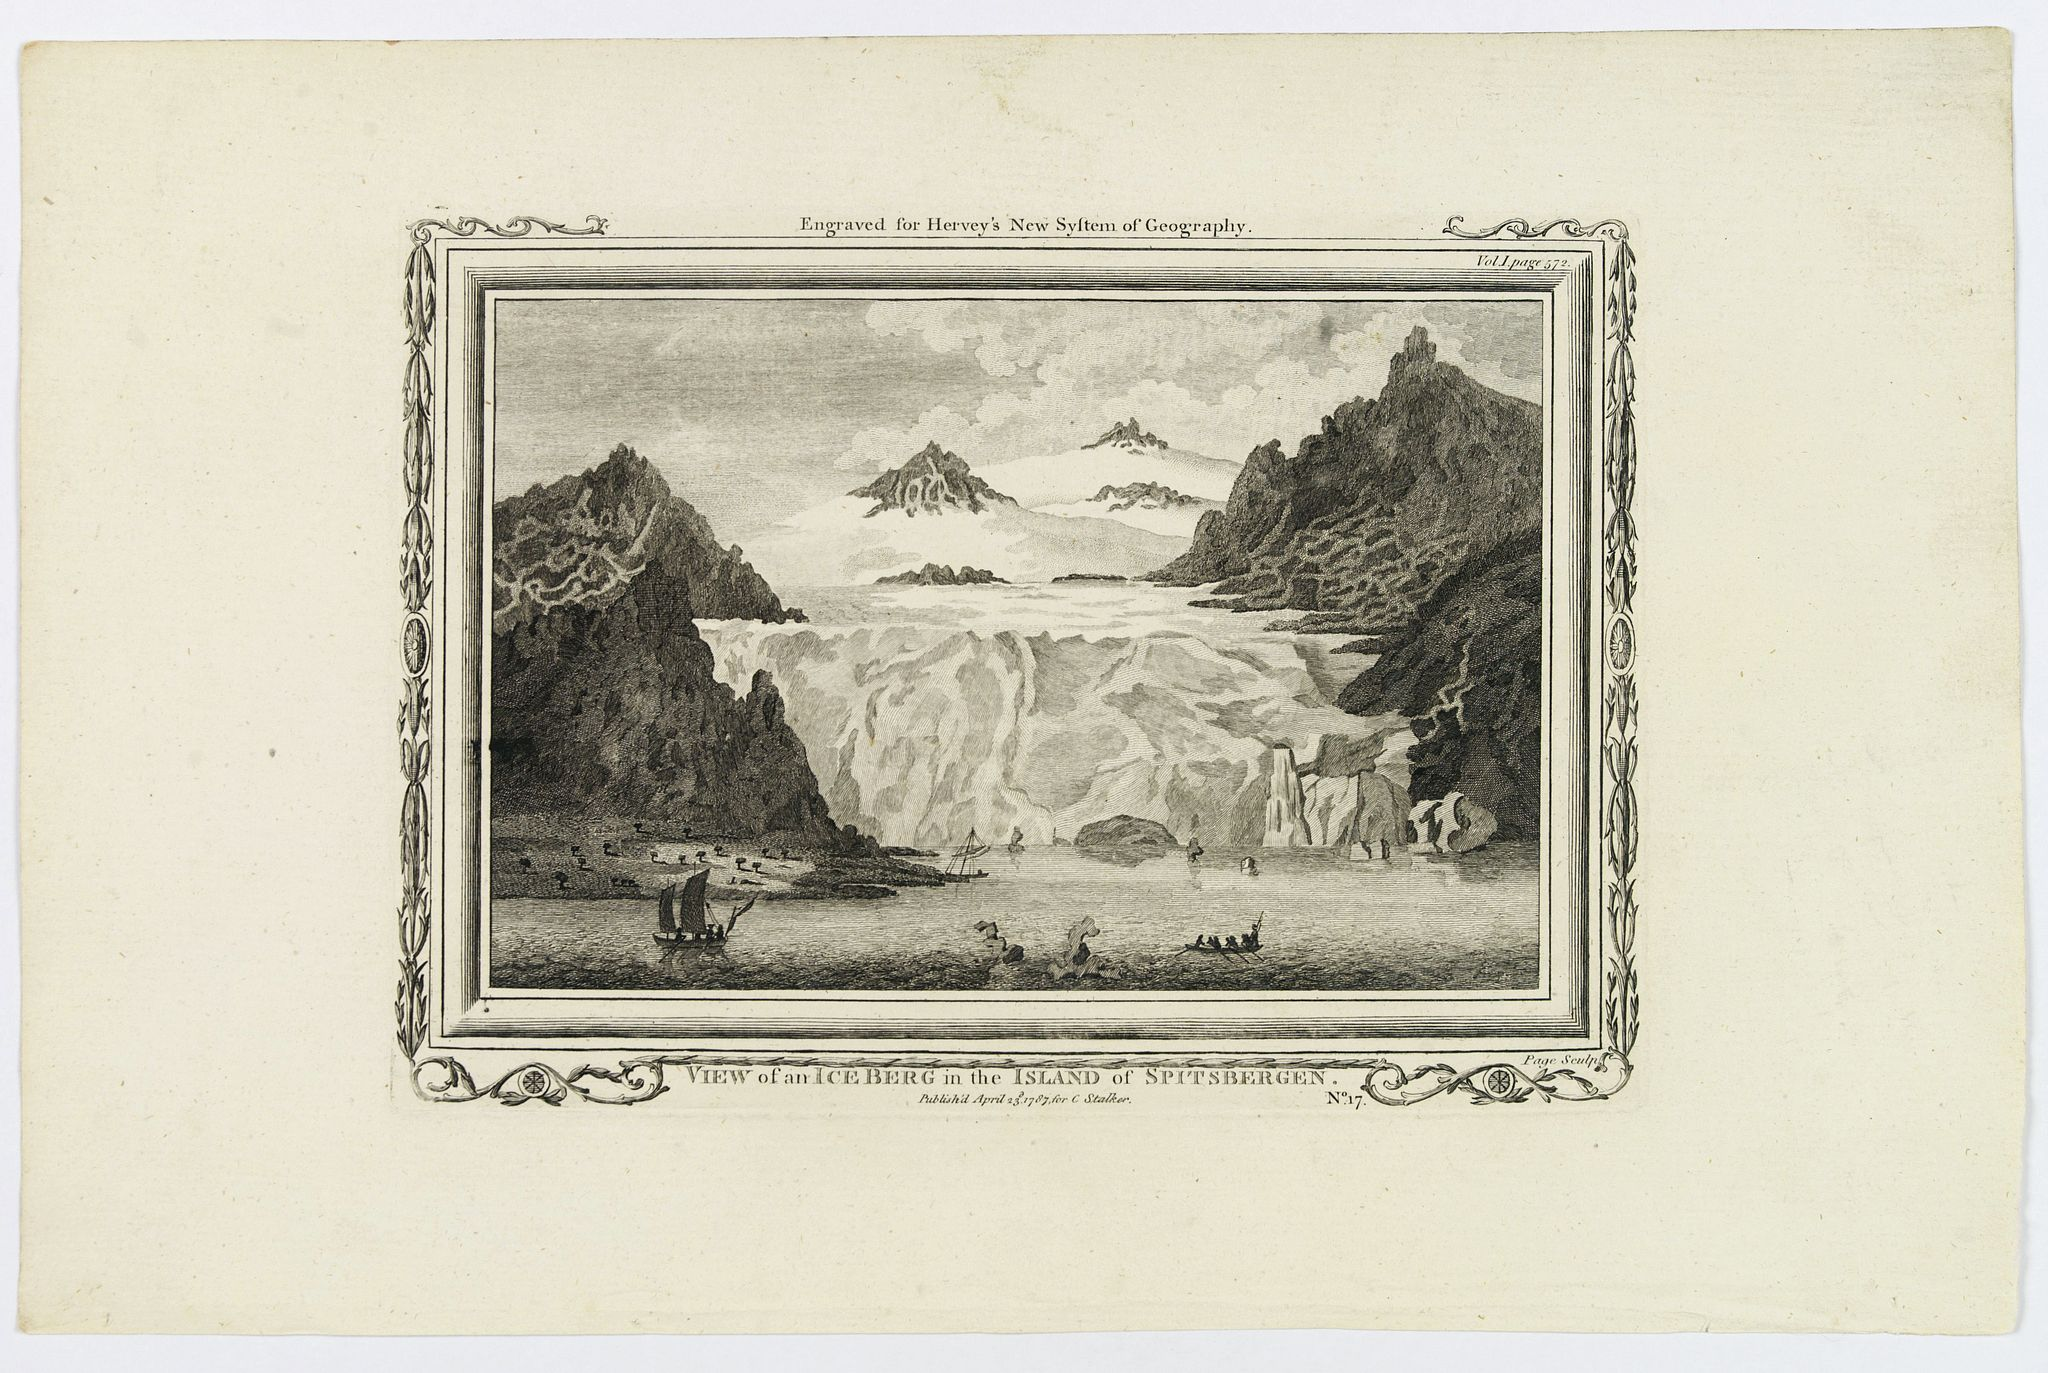 STALKER, C., View of an Iceberg in the Island of Spitsbergen., antique map, old maps